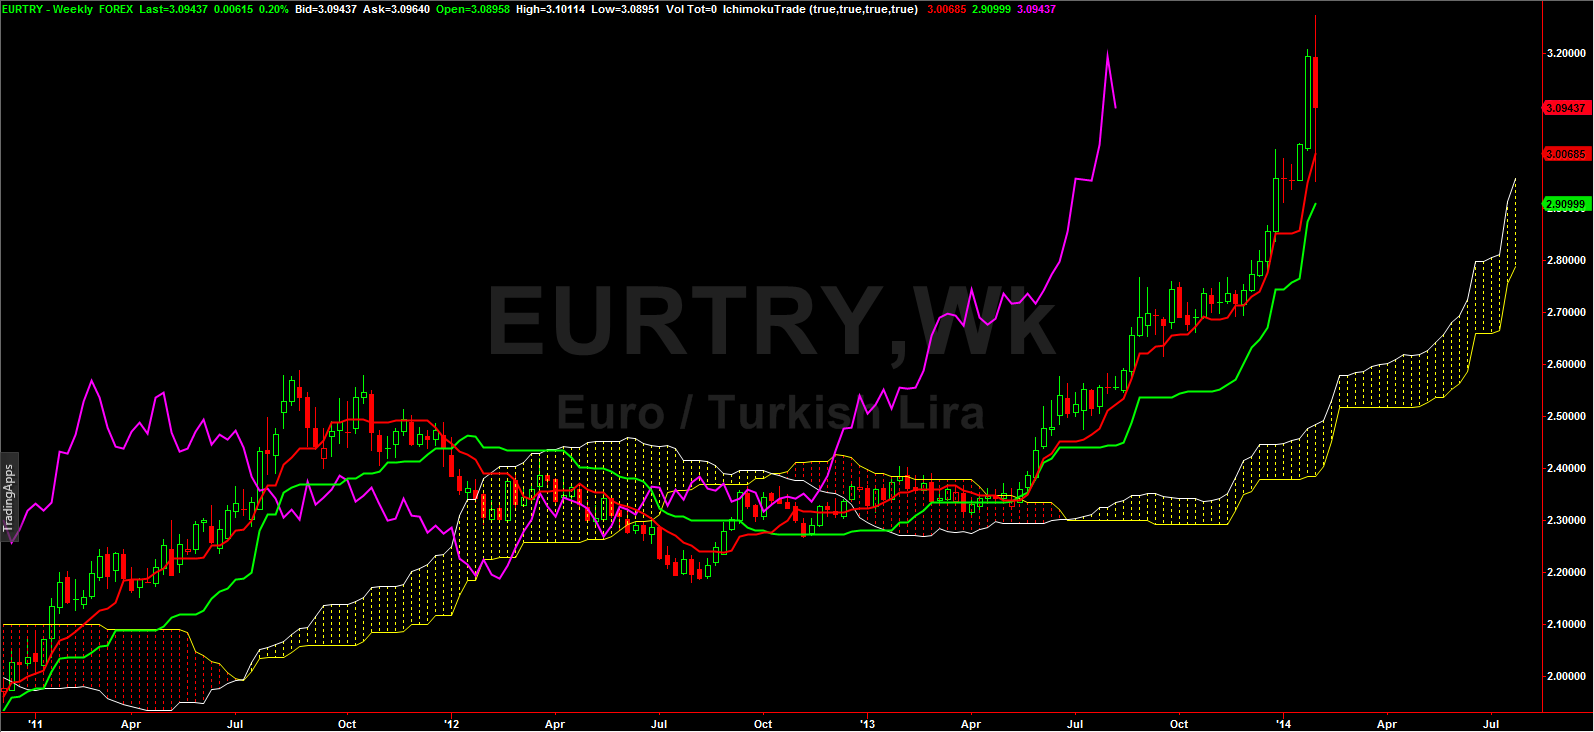 Blog_currency_eurtry_chart.